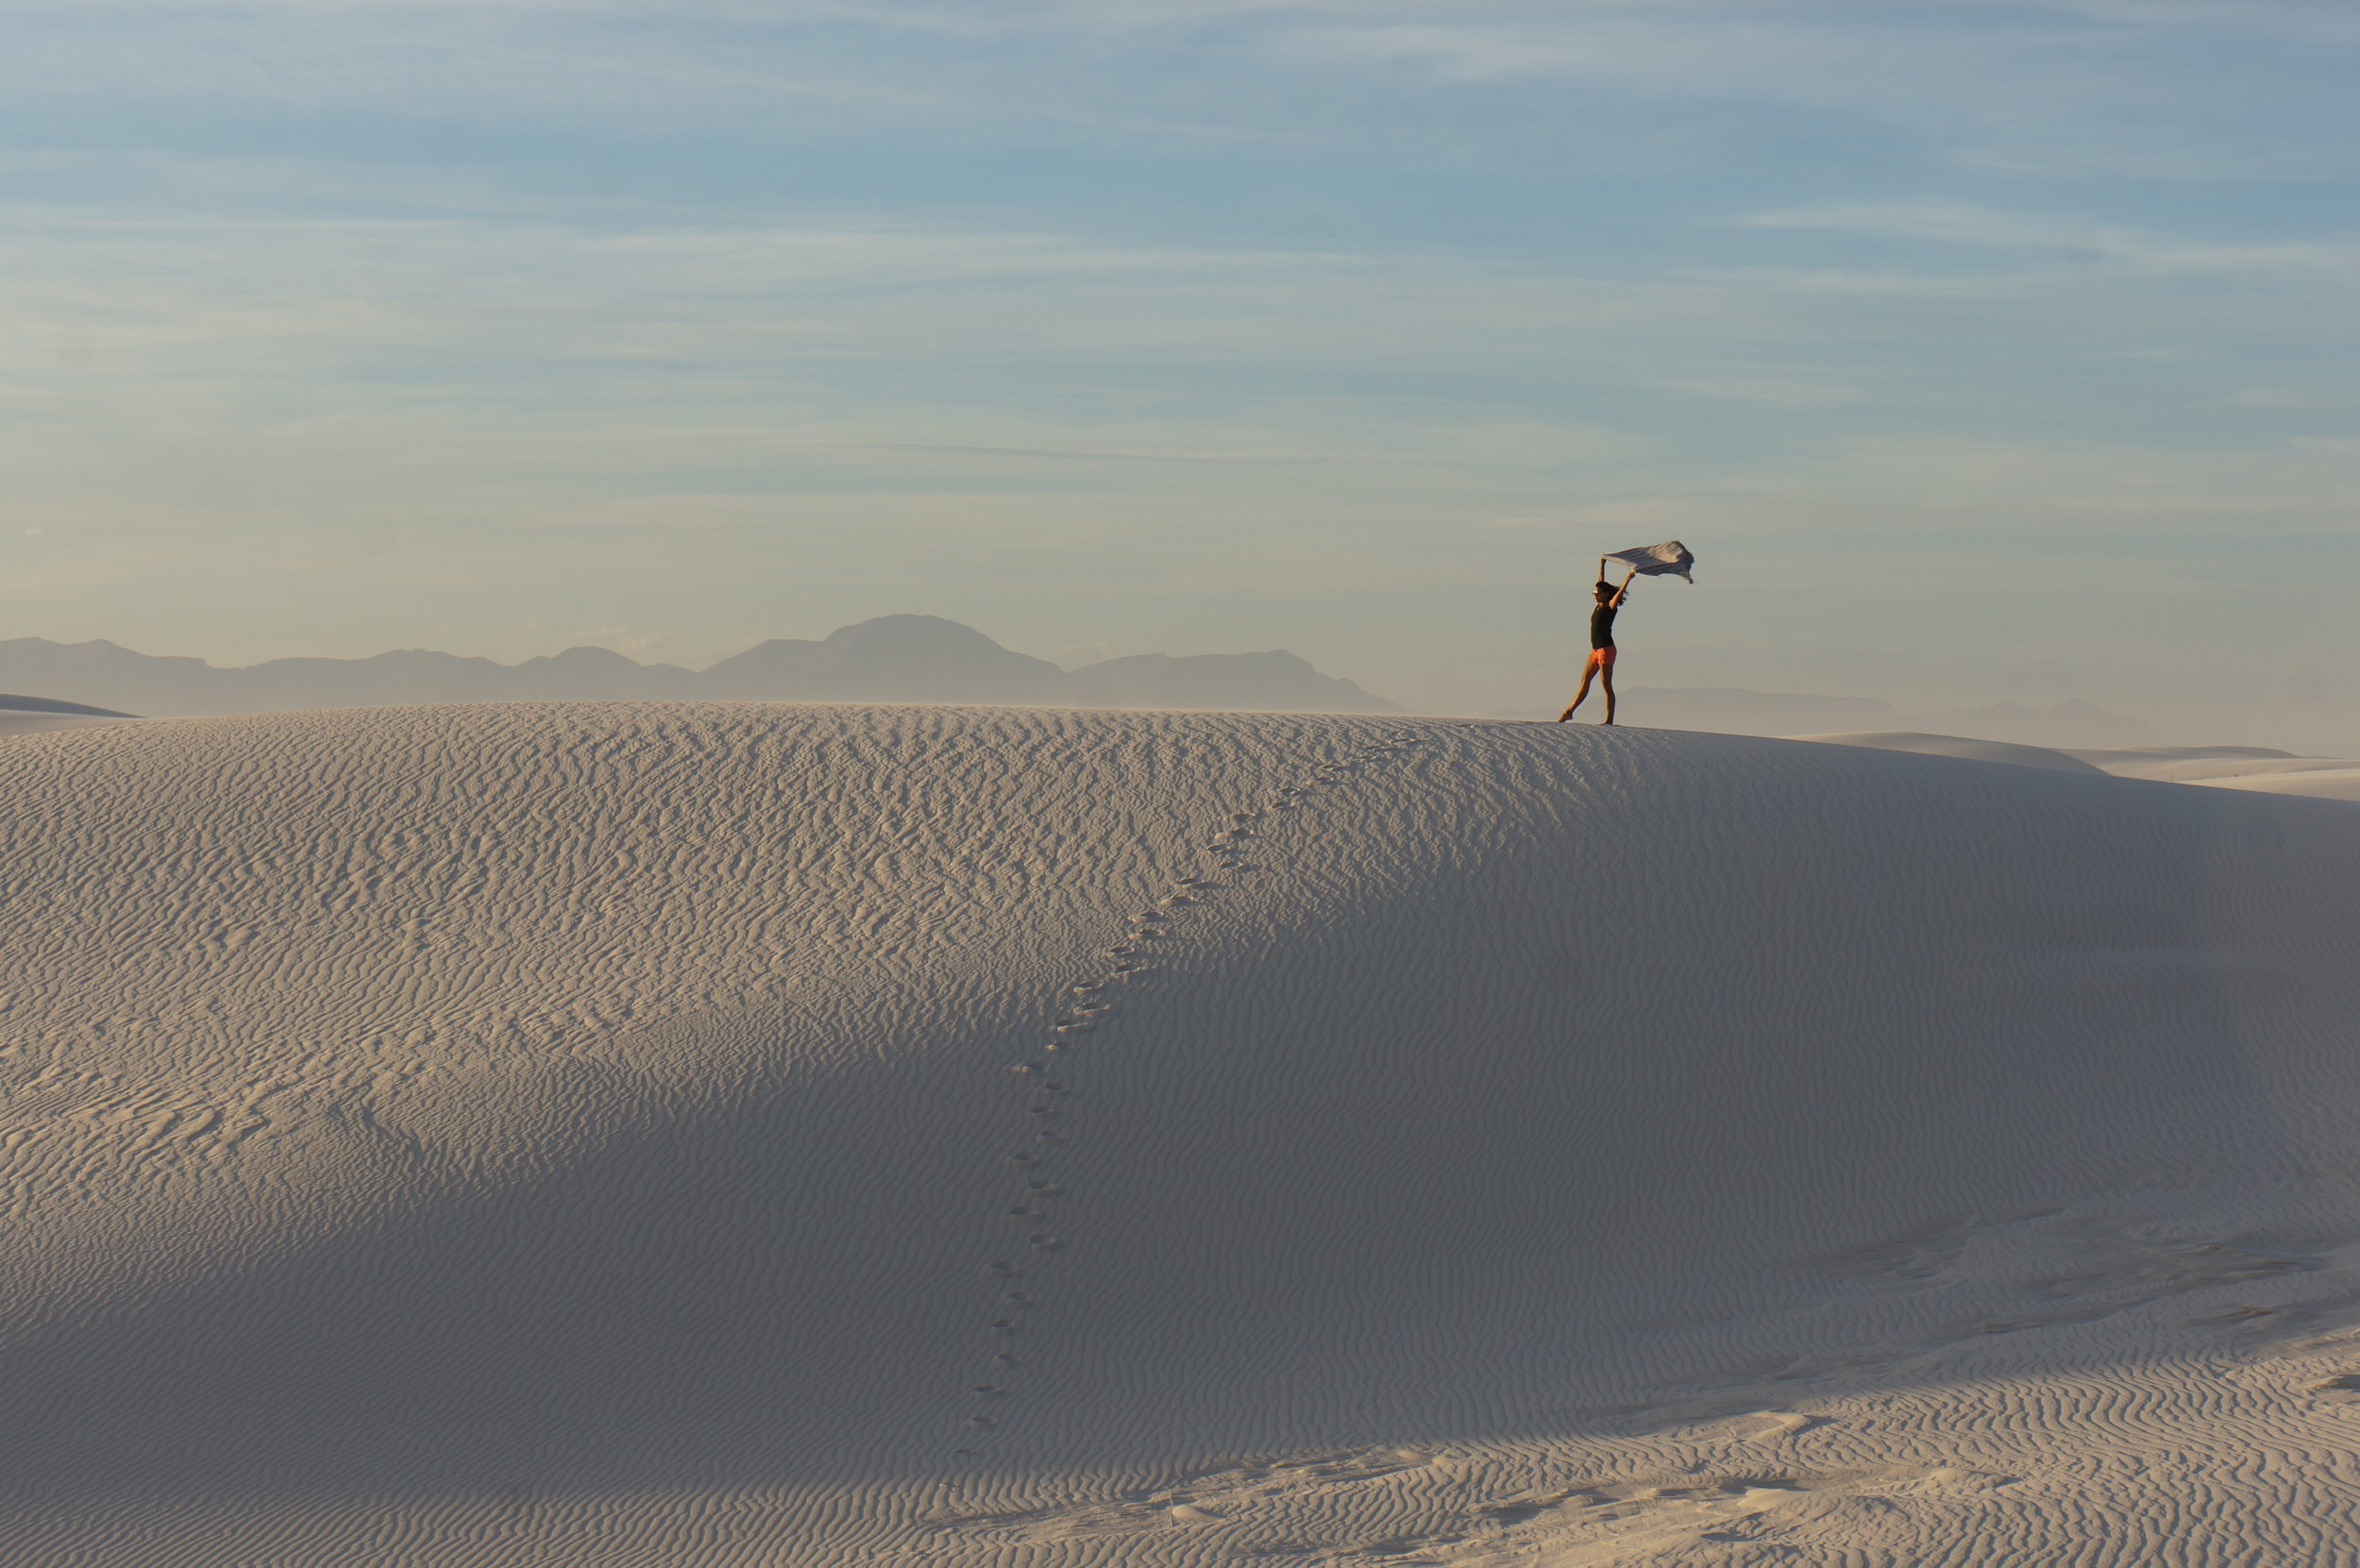 Soaking in all the views (and wind) that White Sands National Monument has to offer.